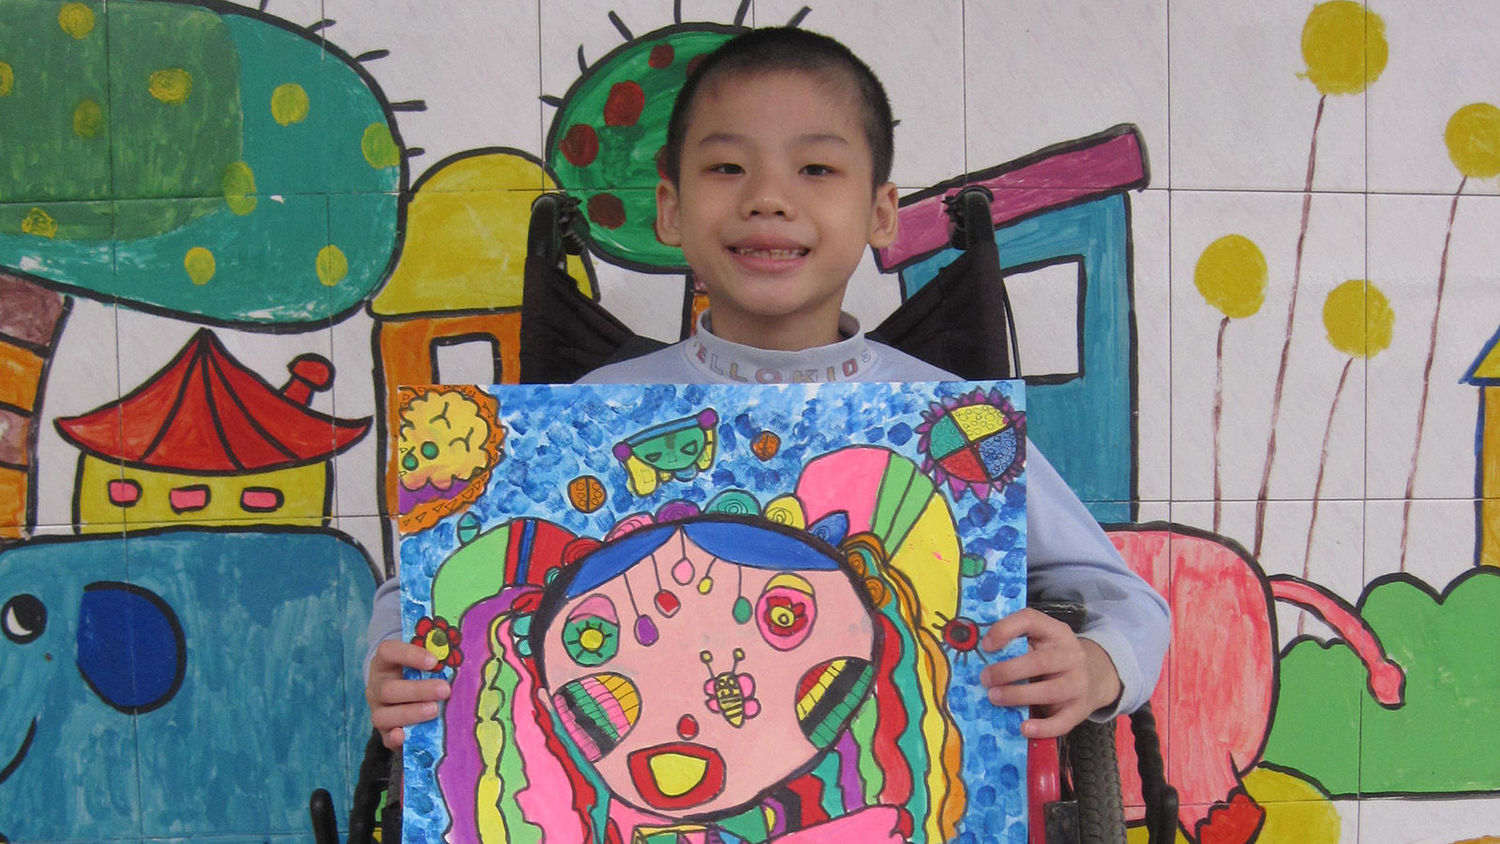 Wu Zhenhao at 8. Zhenhao, whose art training was funded by OneSky, was orphaned as an infant and joined OneSky's programs at the age of four months.